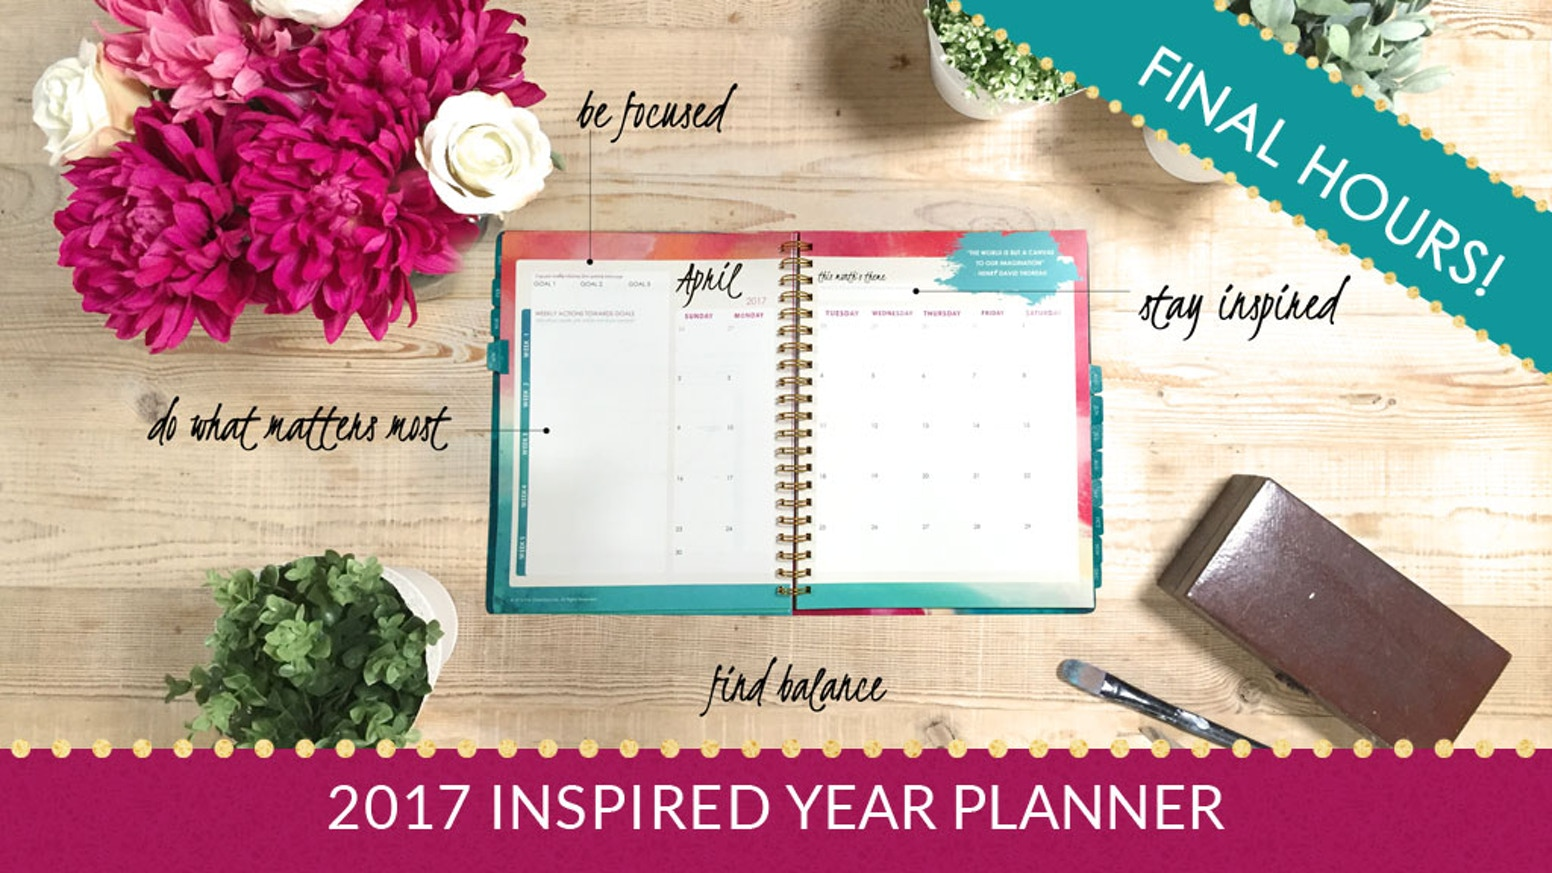 A beautiful, inspiring calendar & goal-setting tool, bringing balance to purposeful creatives who want to give their best to the world.